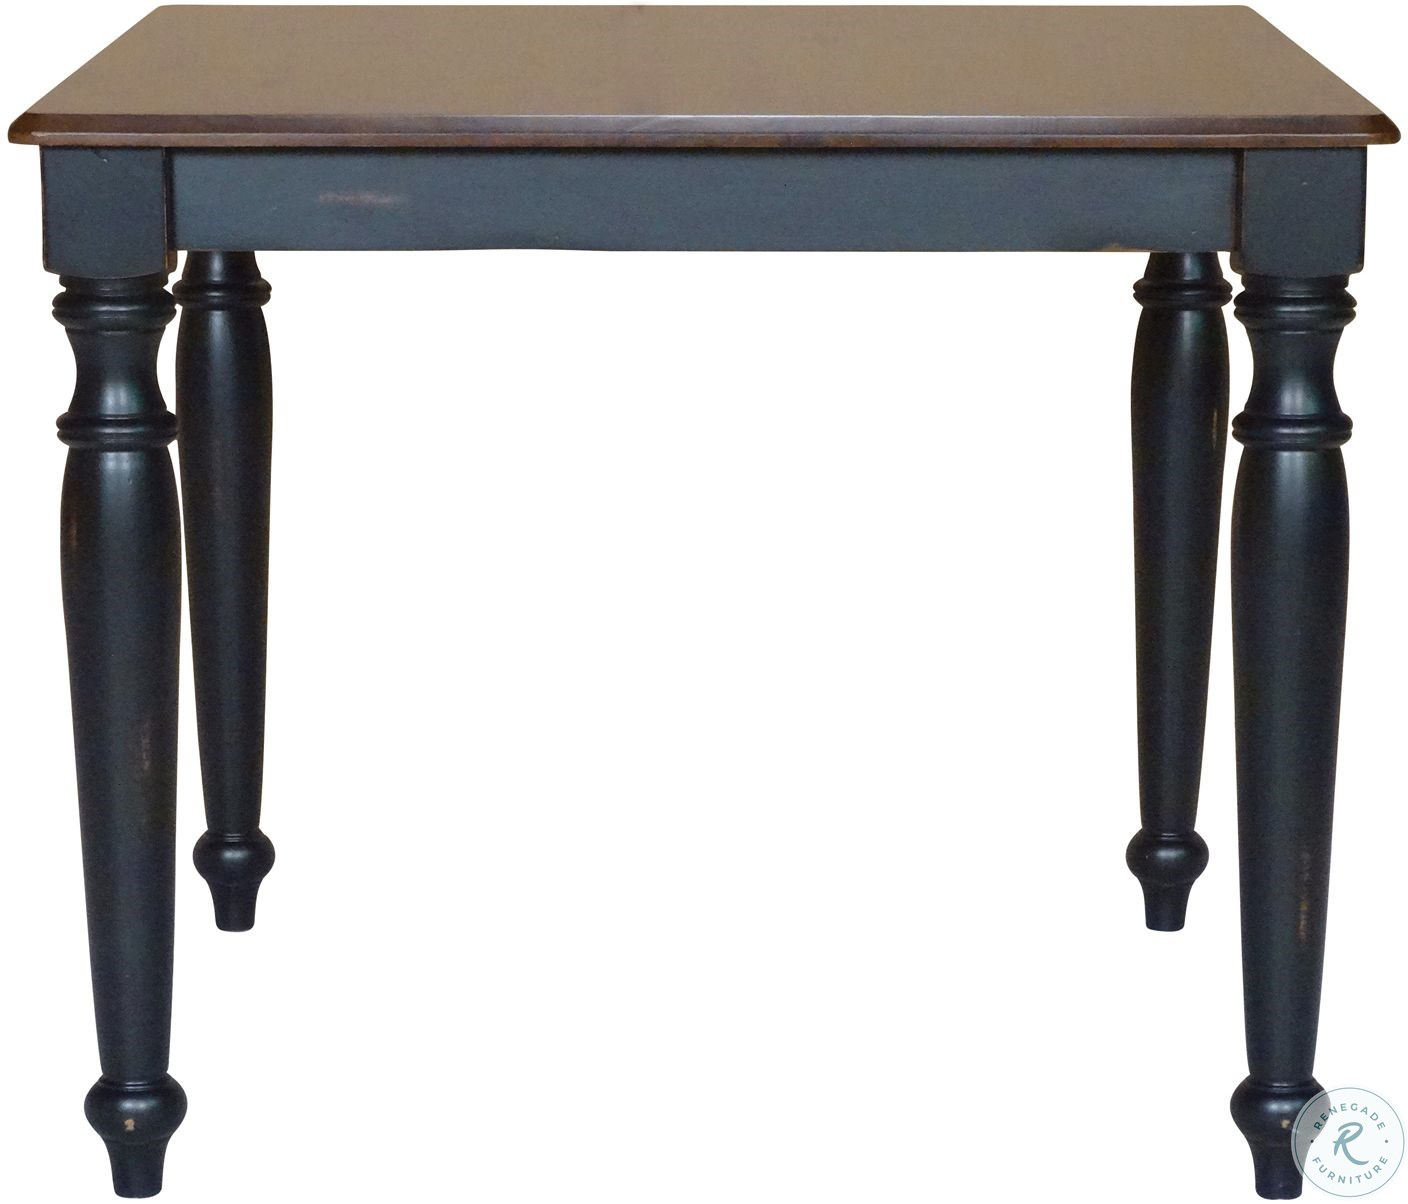 Bridgeport Aged Ebony and Espresso Square Dining Table from John ...